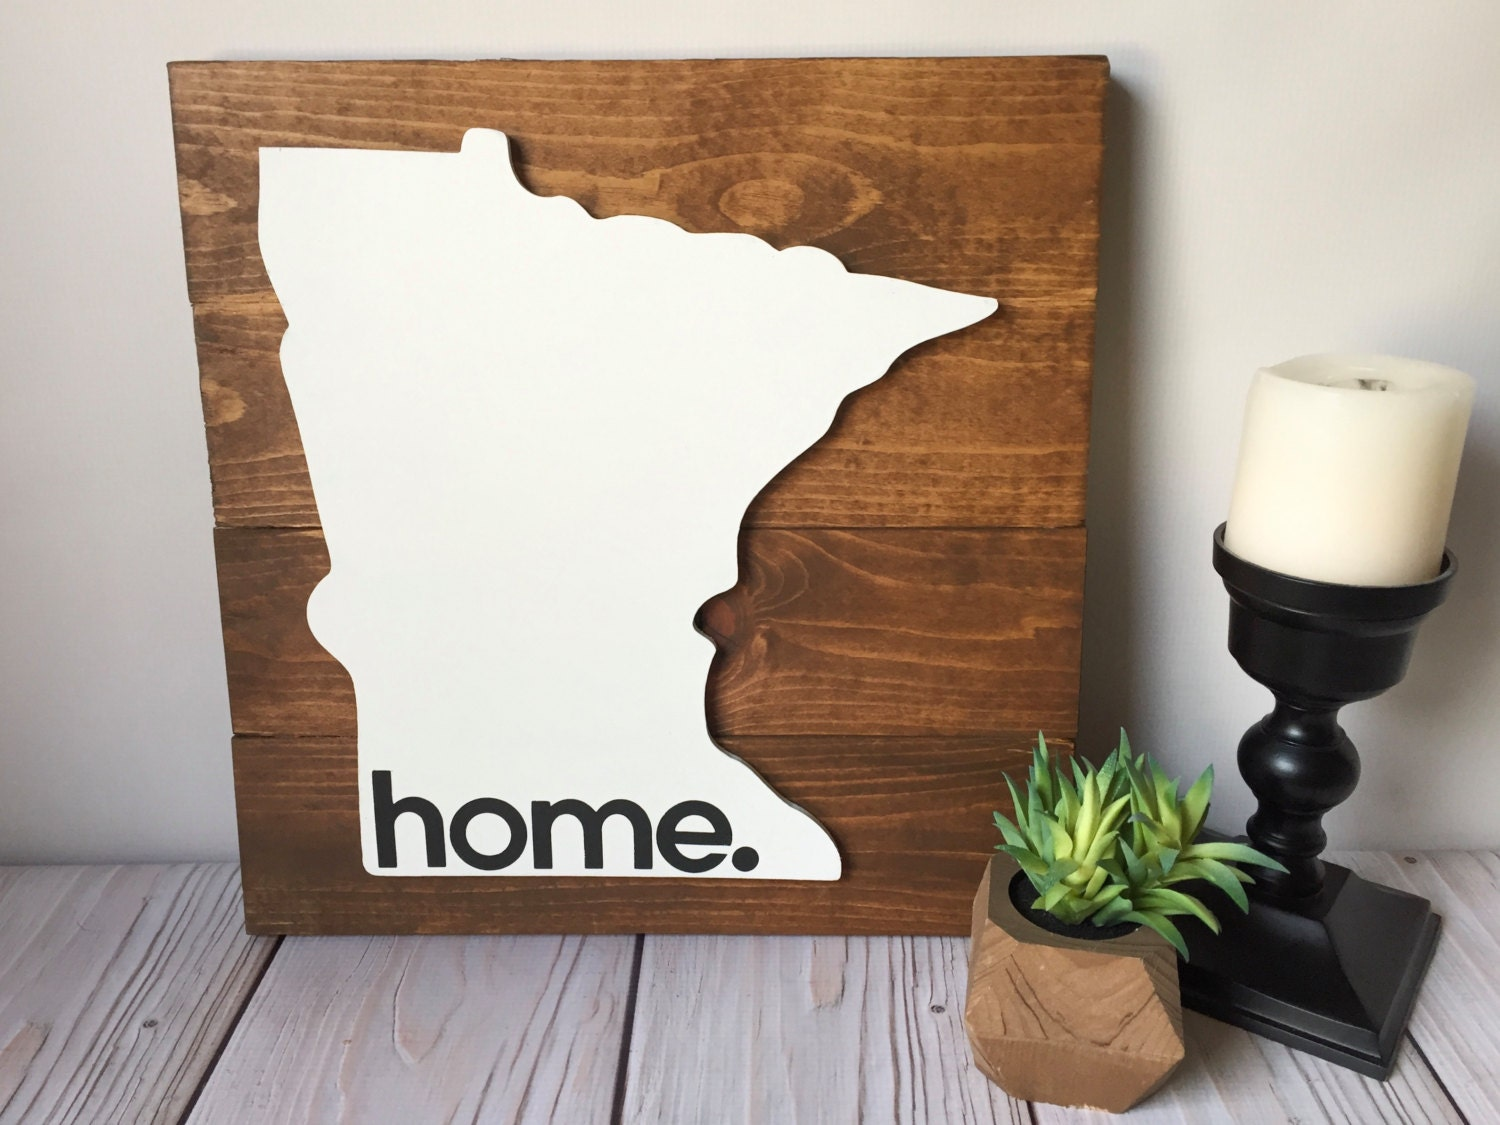 Rustic home sign rustic wall decor minnesota wall art for Home decorations accessories